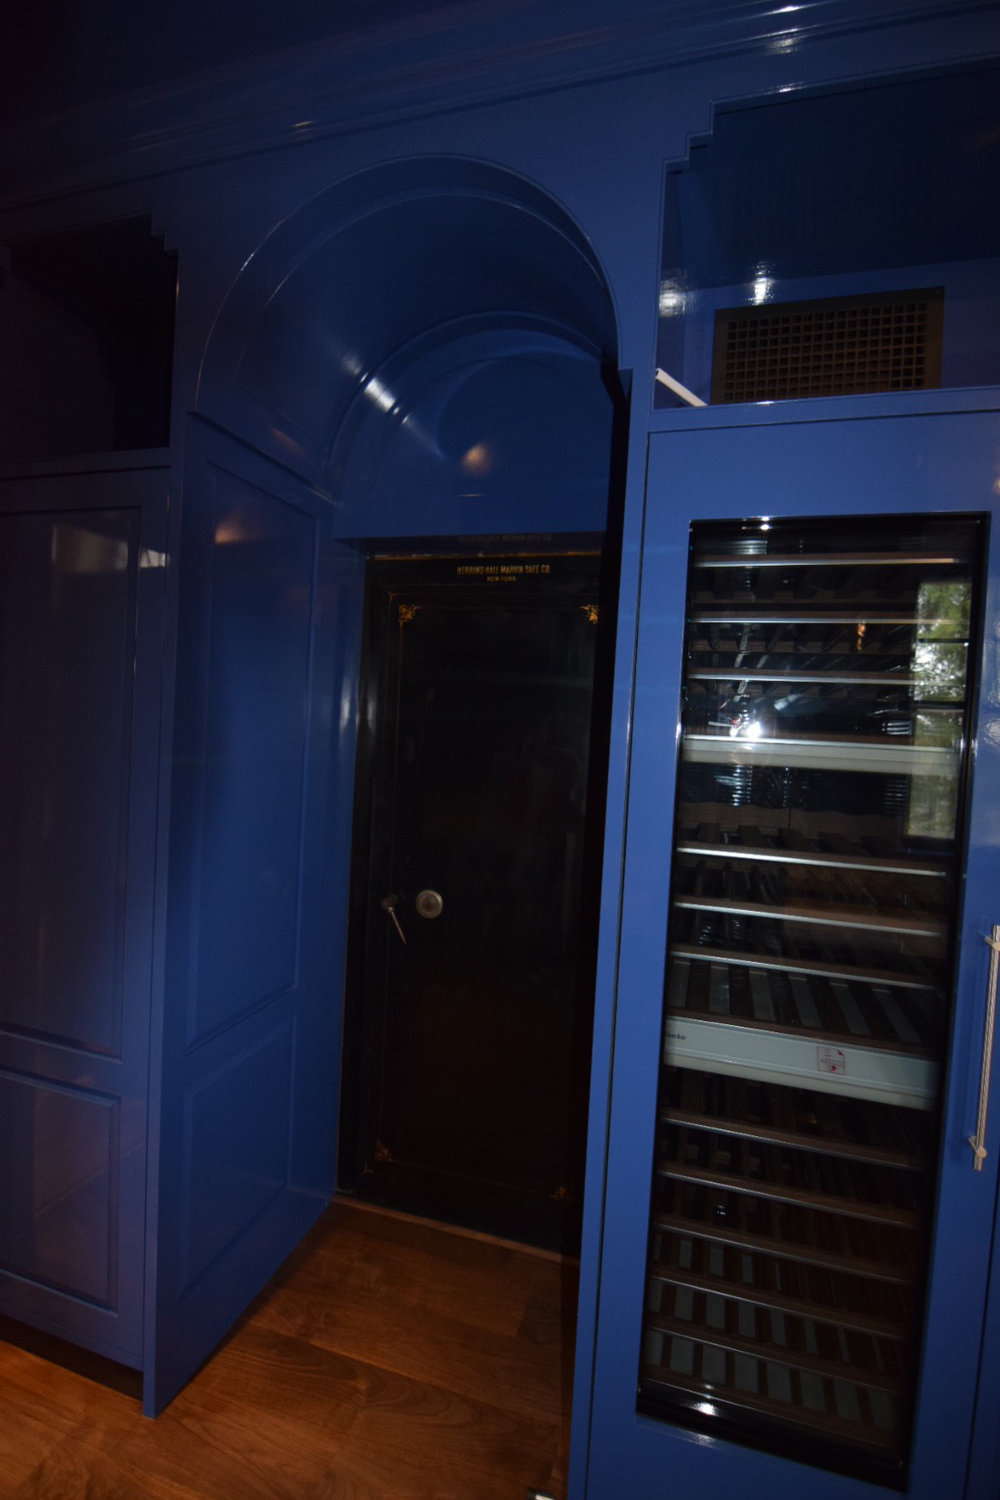 wine-refrigerator-in-blue-high-gloss-finish-butlers-pantry.jpg